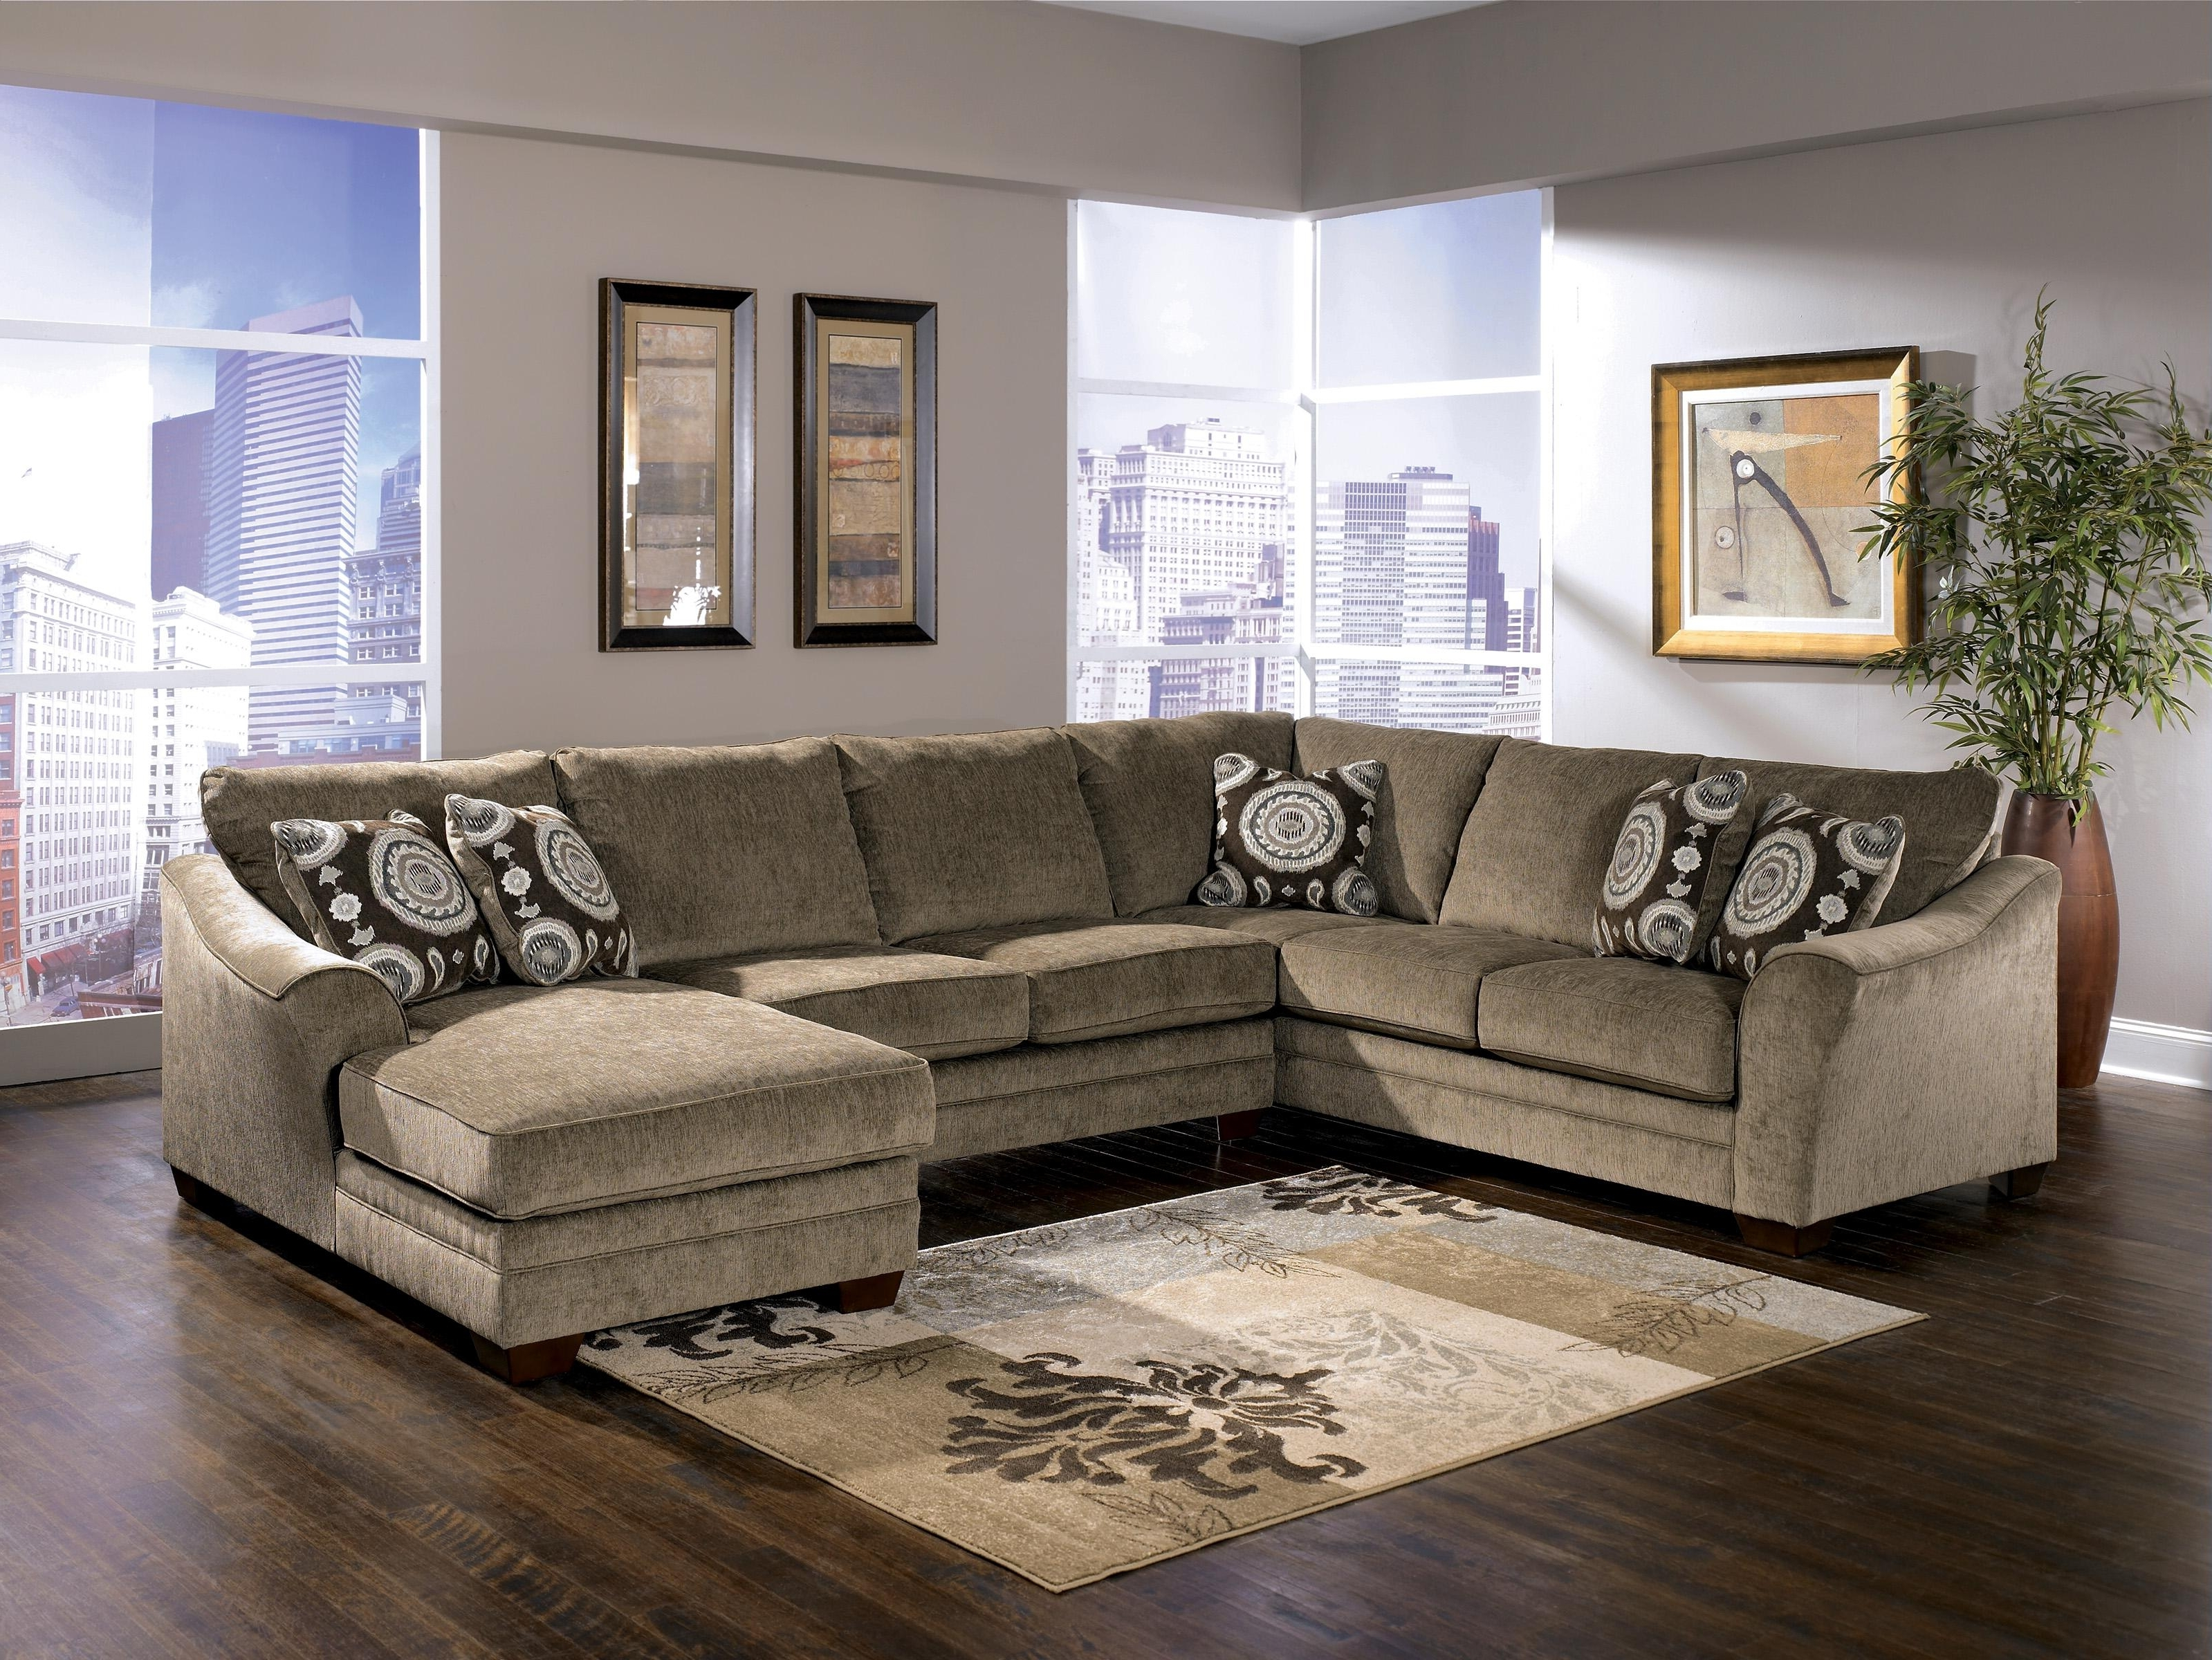 Nebraska Furniture Mart Loveseats Mrs B's Clearance Discount Throughout Famous Kanes Sectional Sofas (View 3 of 15)